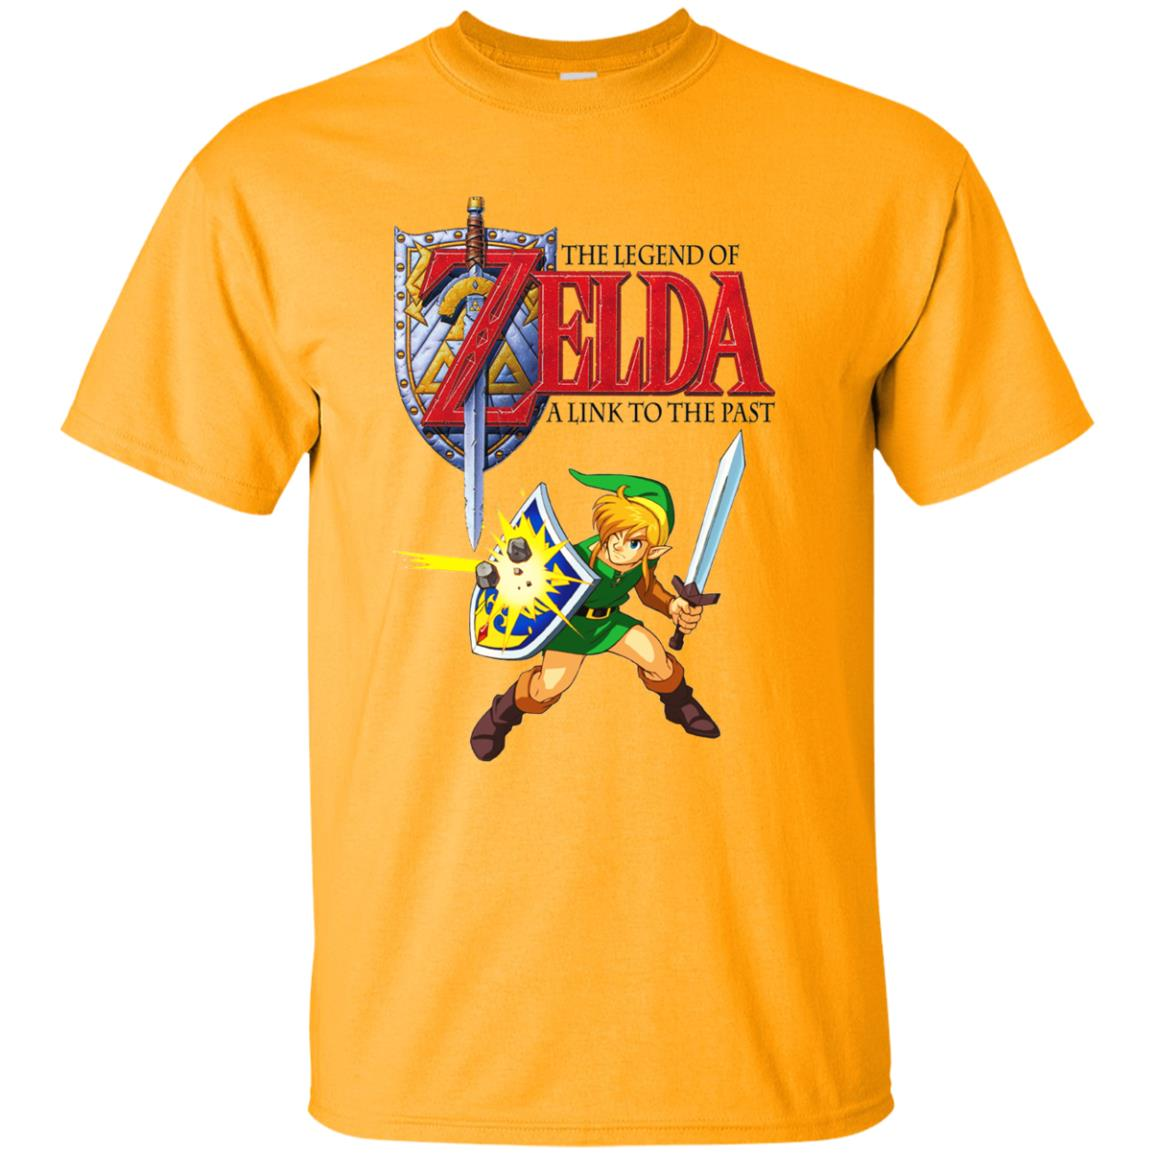 99a67568e The Legend of Zelda a Link To The Past shirt, hoodie, sweater - Icestork